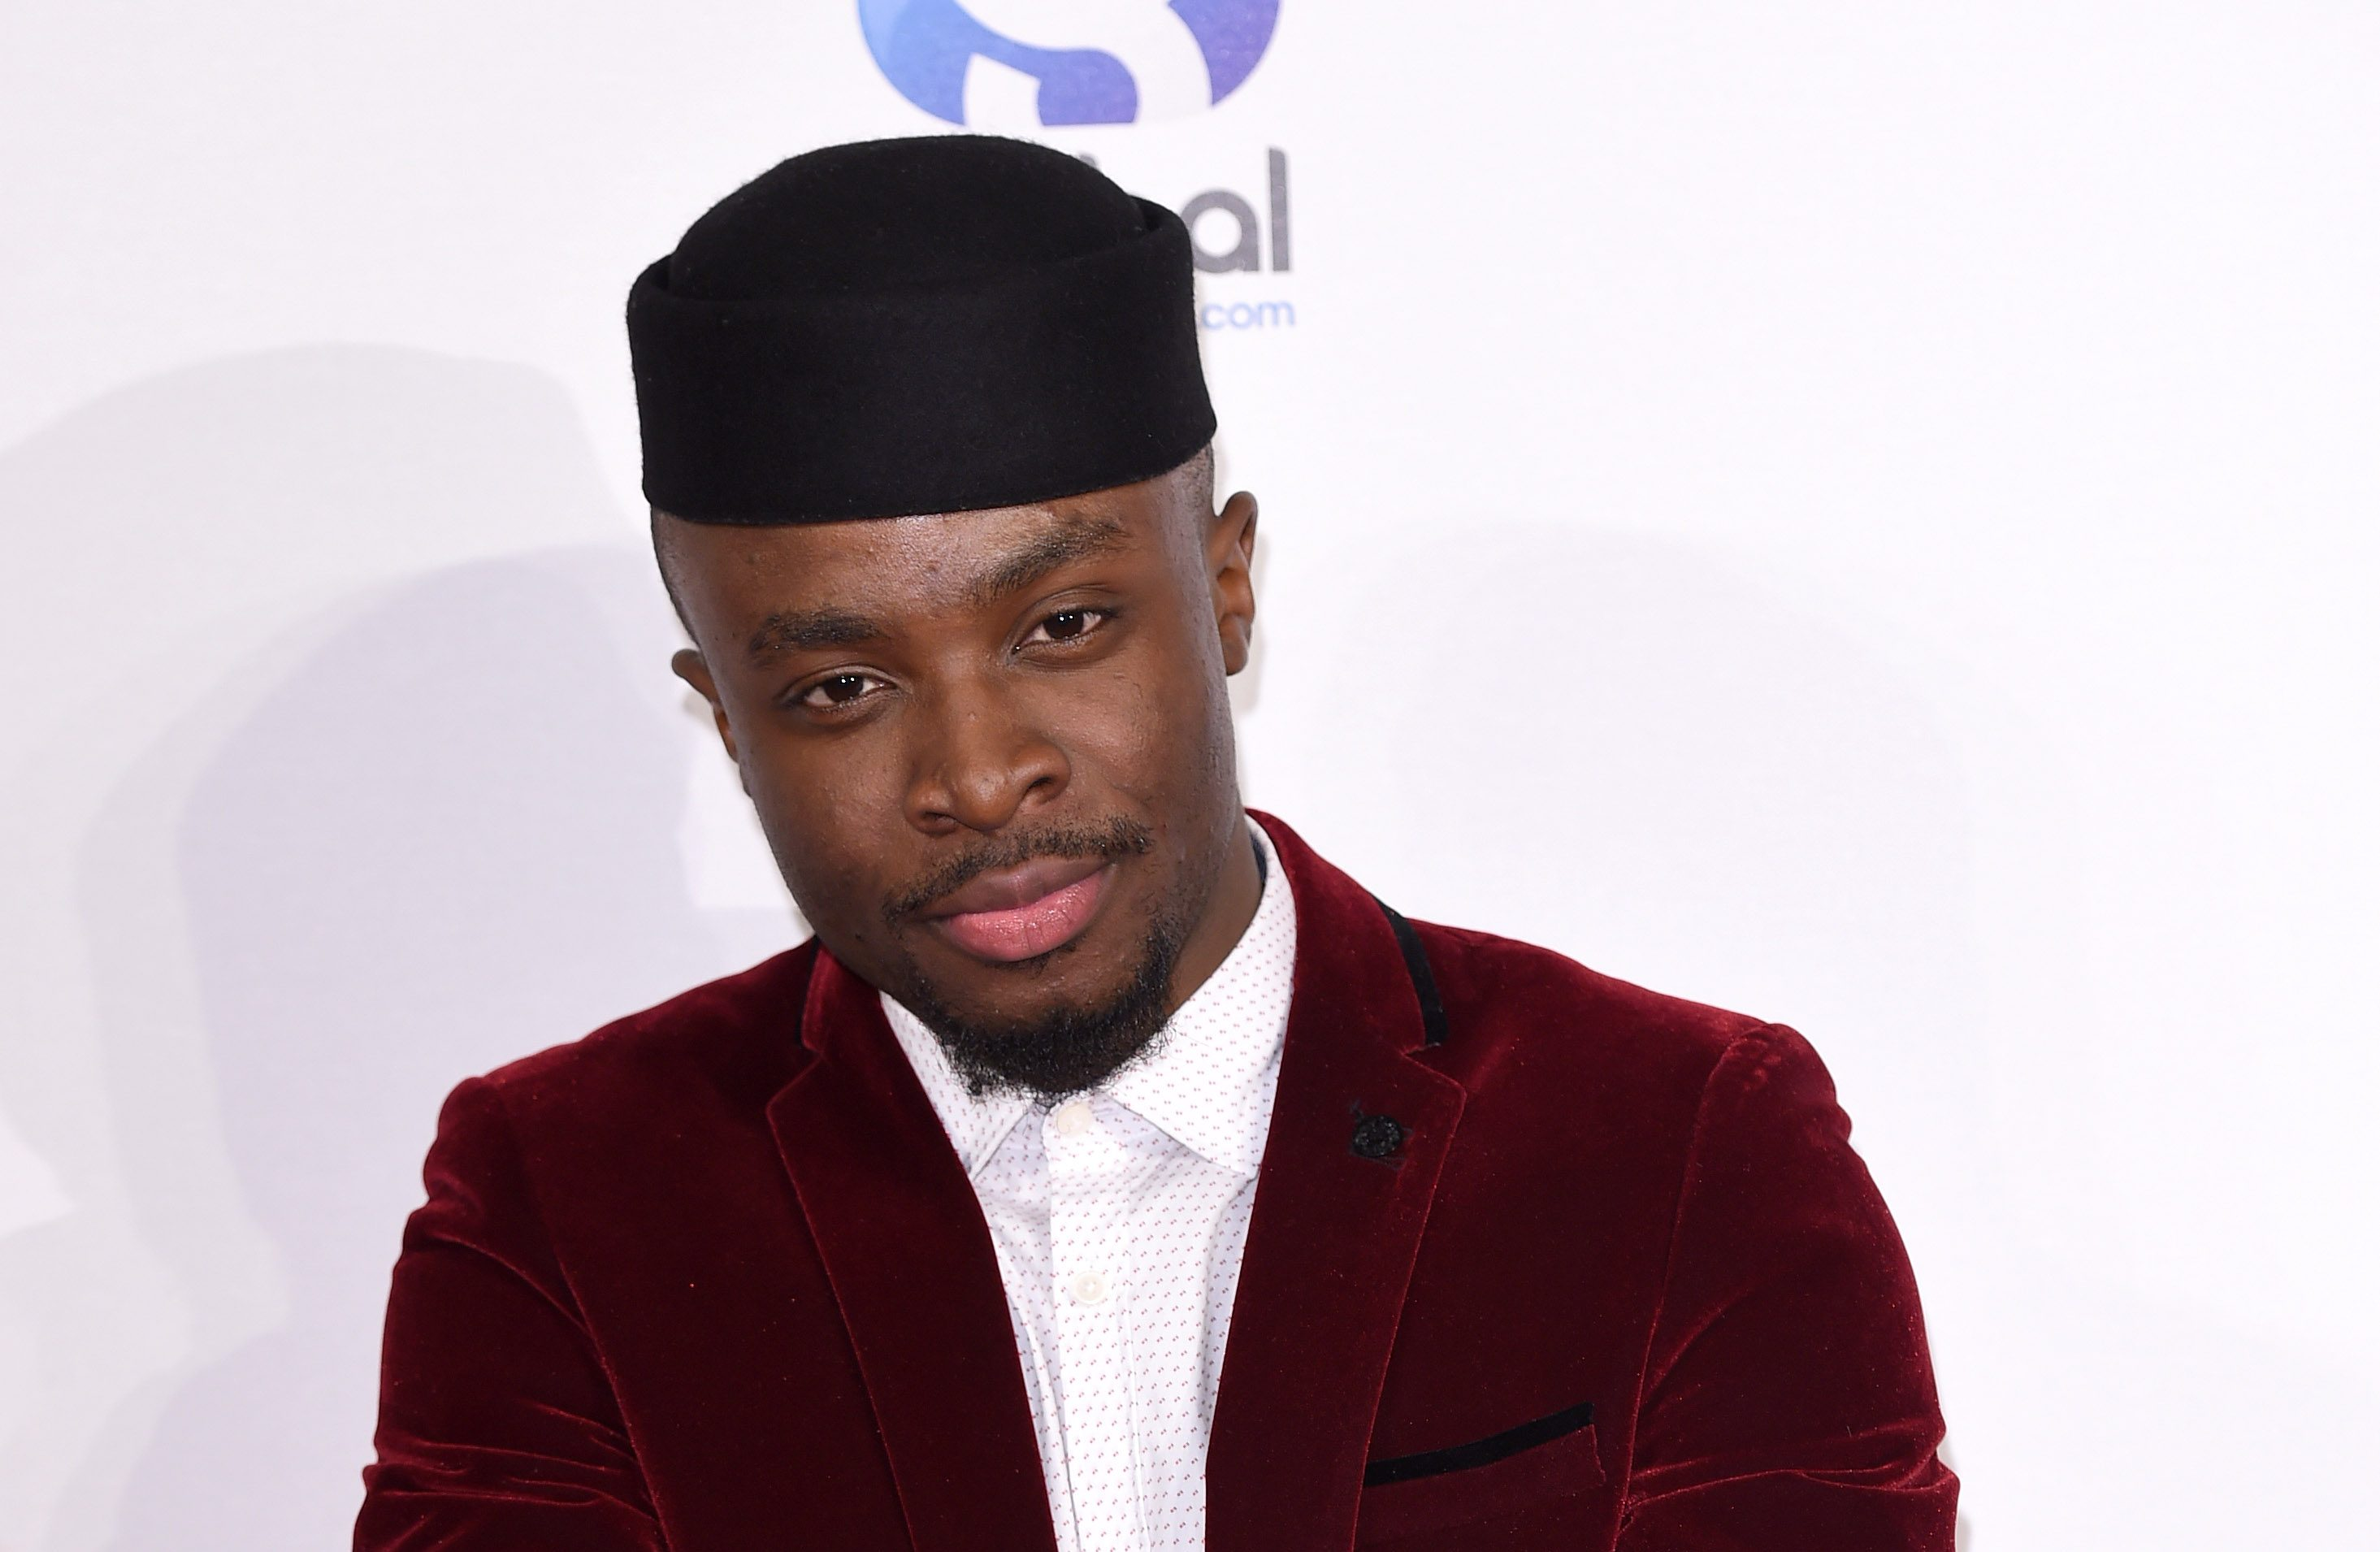 In Focus: UK now has 'young black parents proud to be who they are' says Fuse ODG